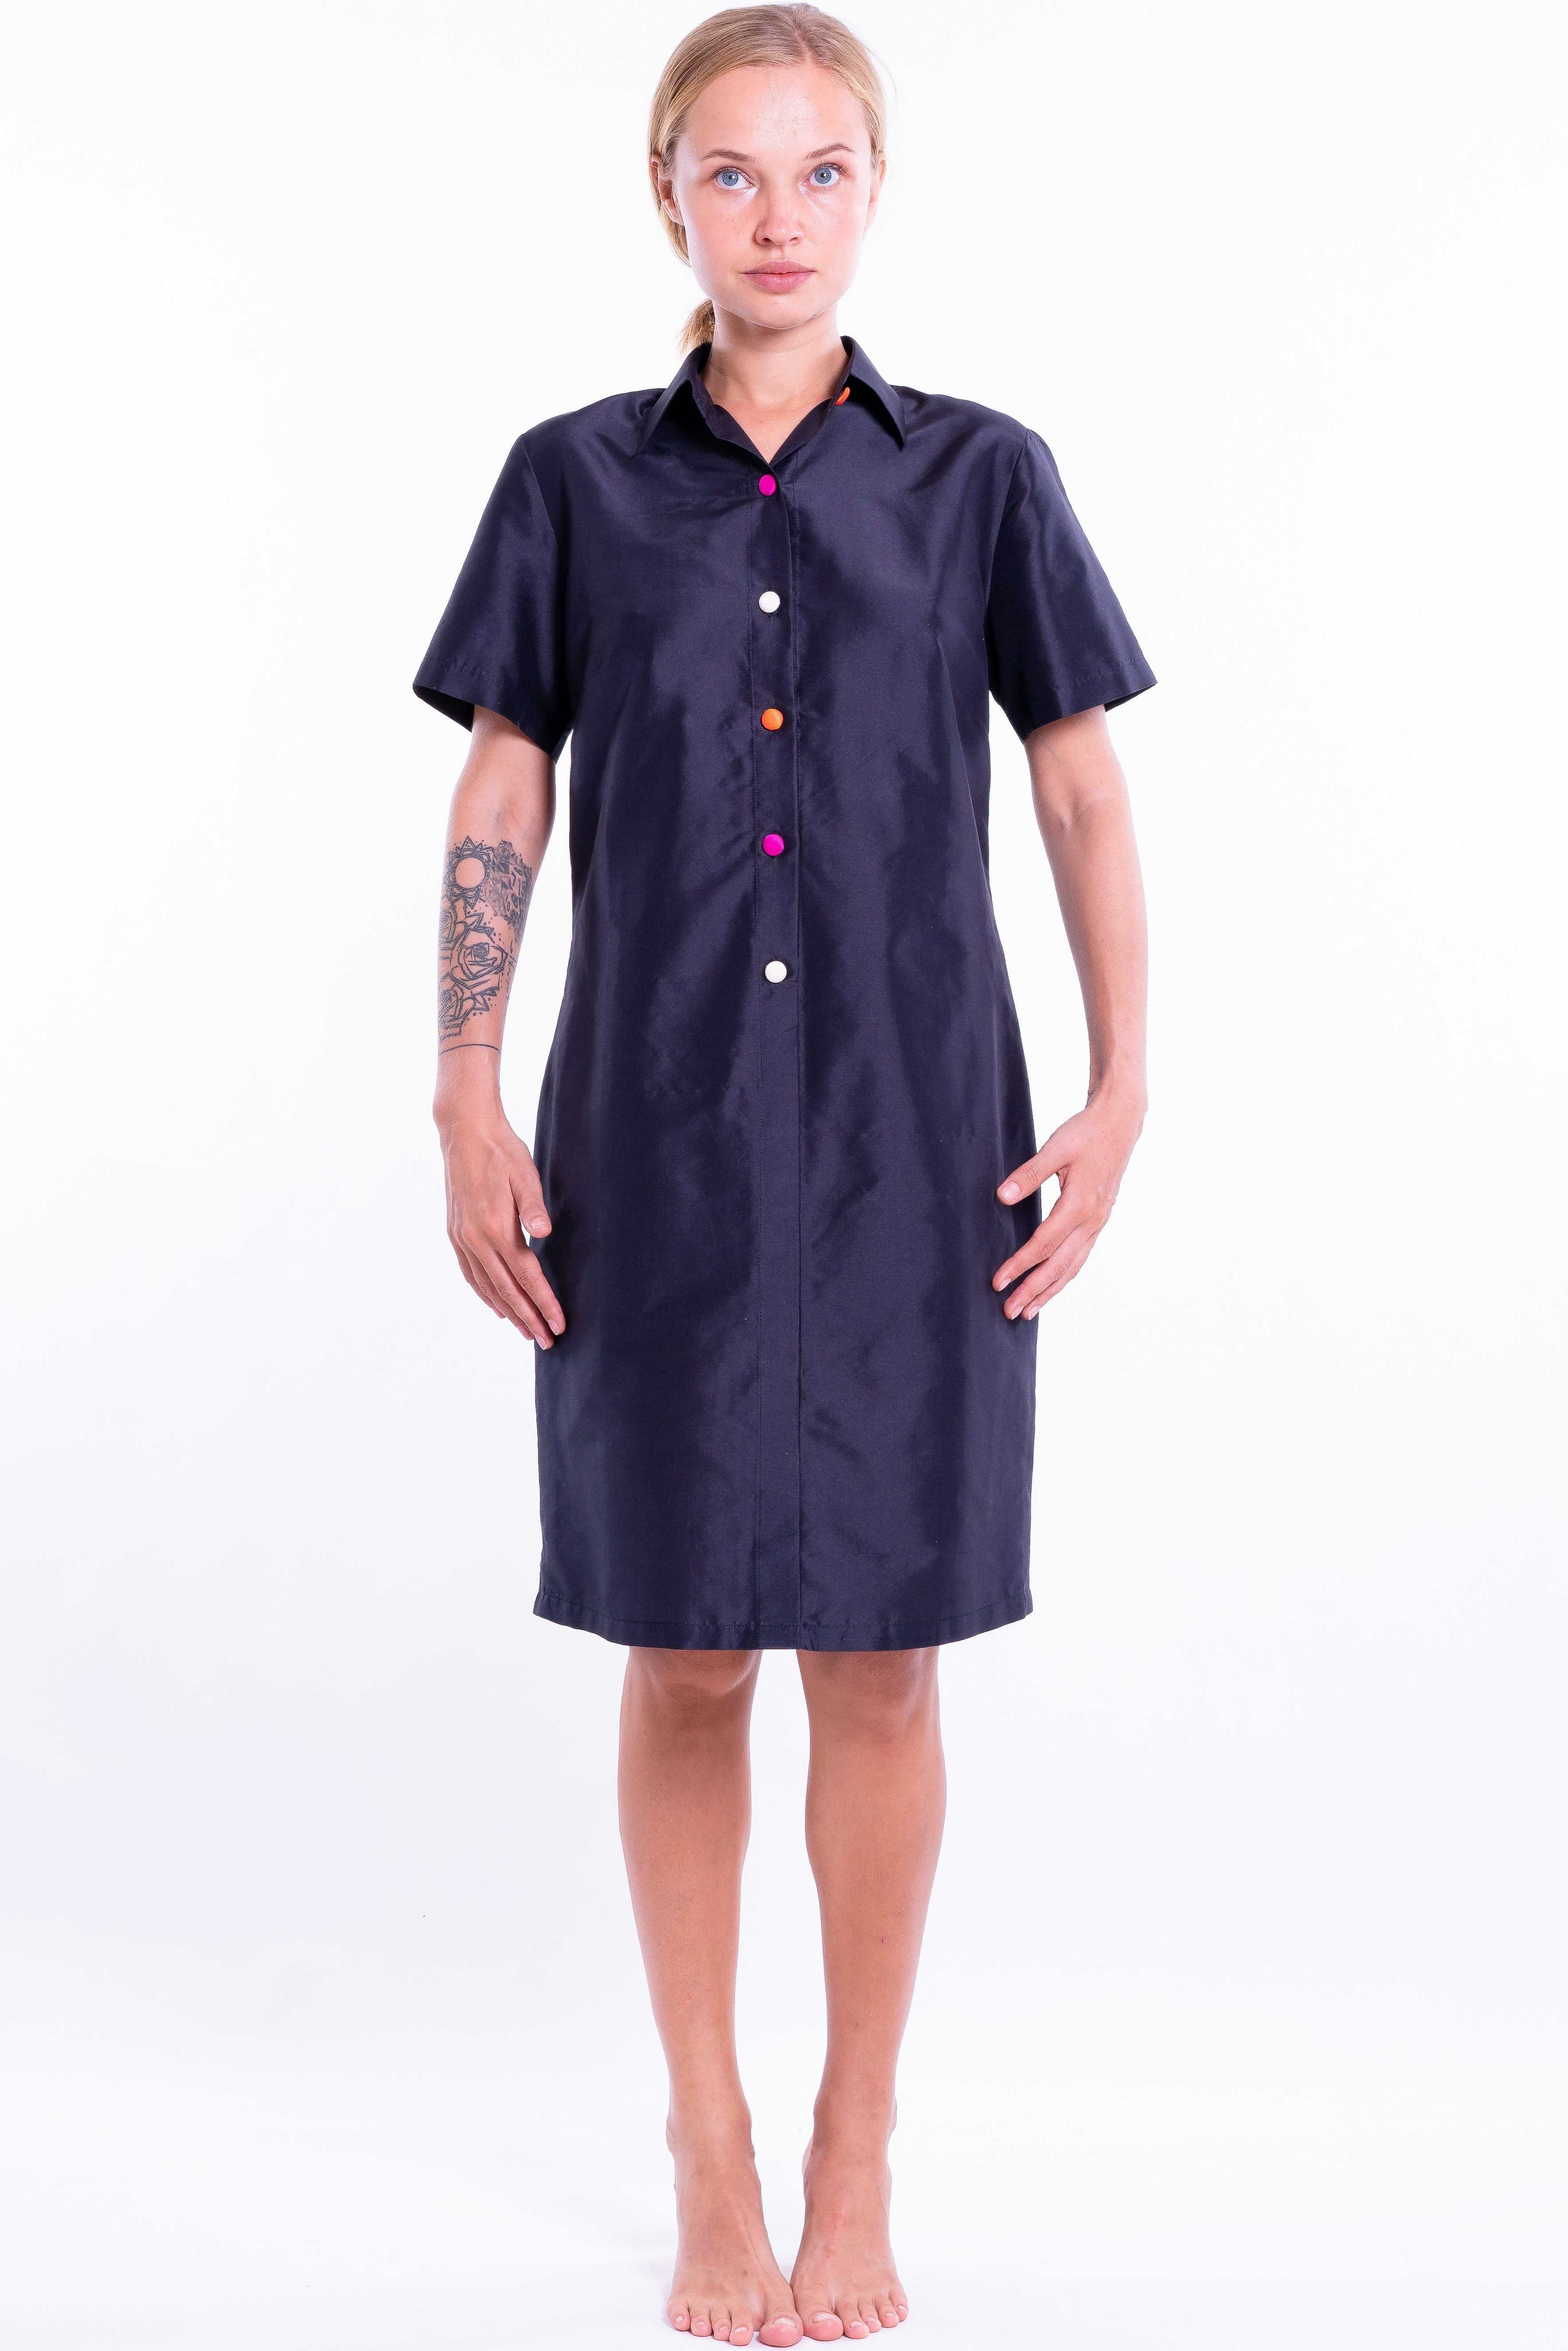 black dress in natural silk with short sleeves and colored buttons, tailored collar, front